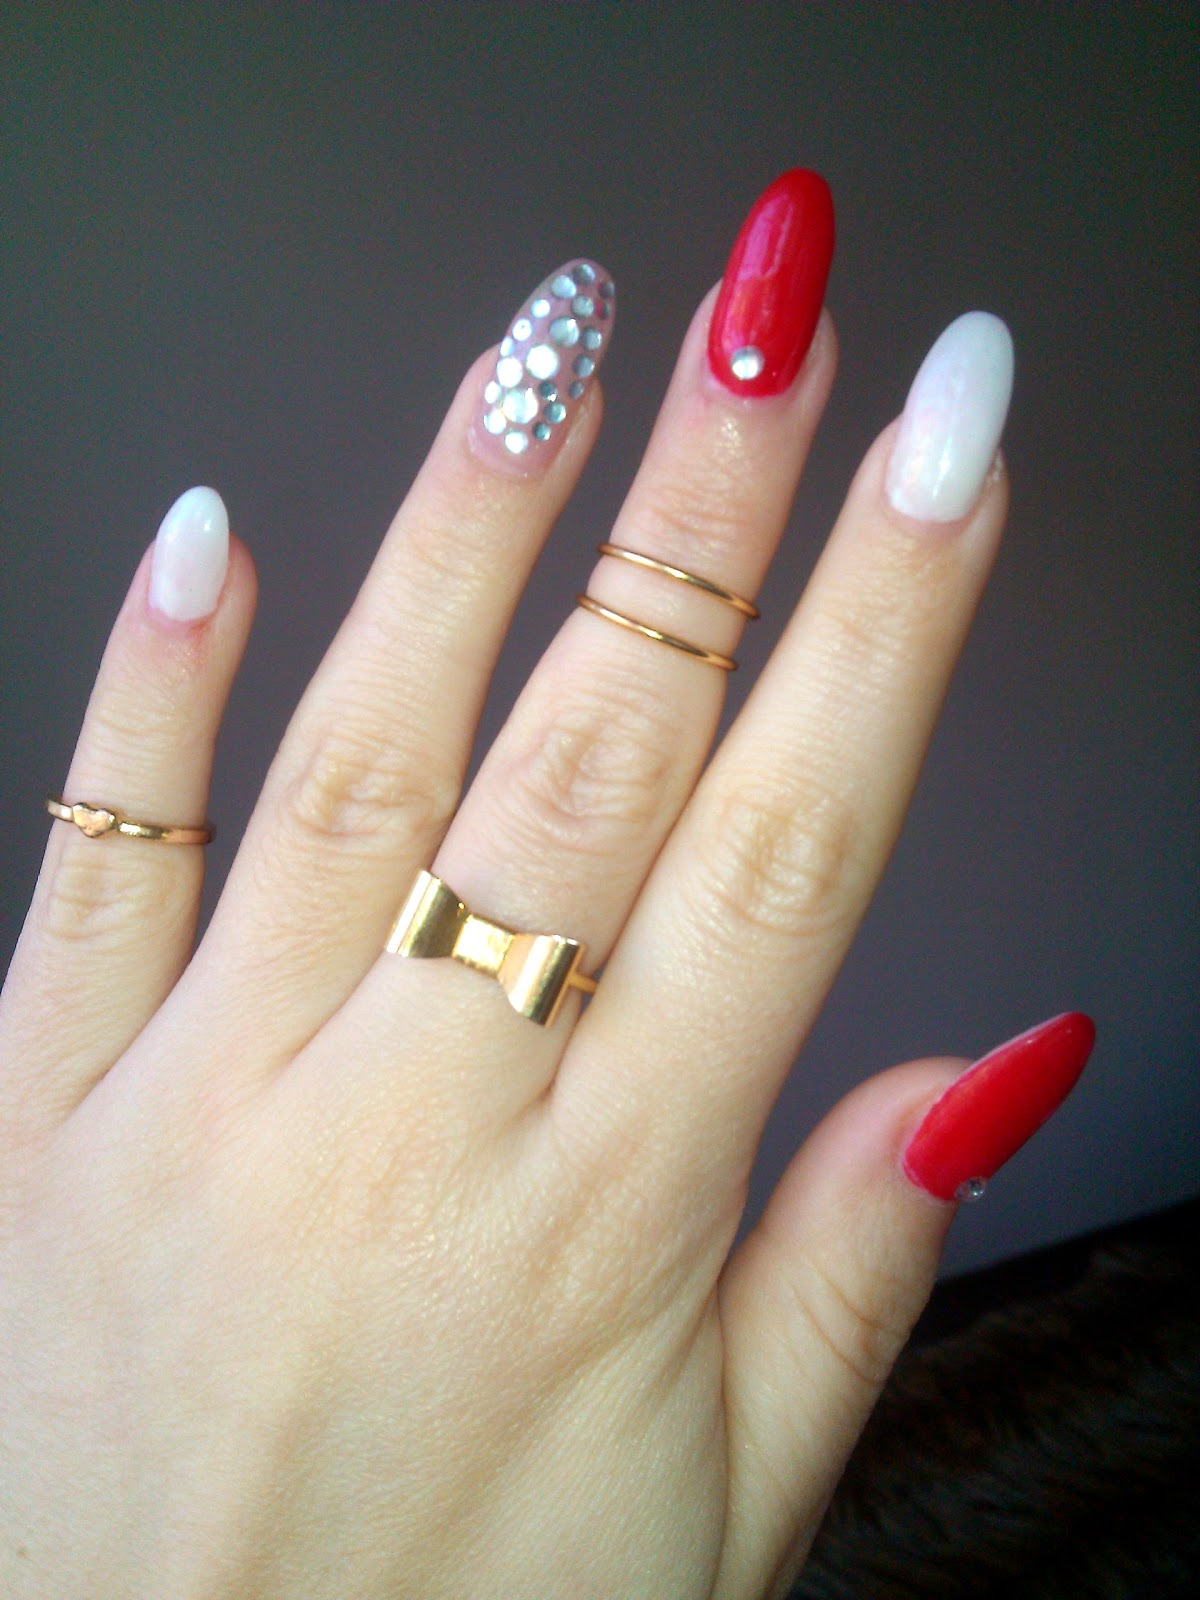 Style Sense Moments: Nails | Red, white and rhinestones